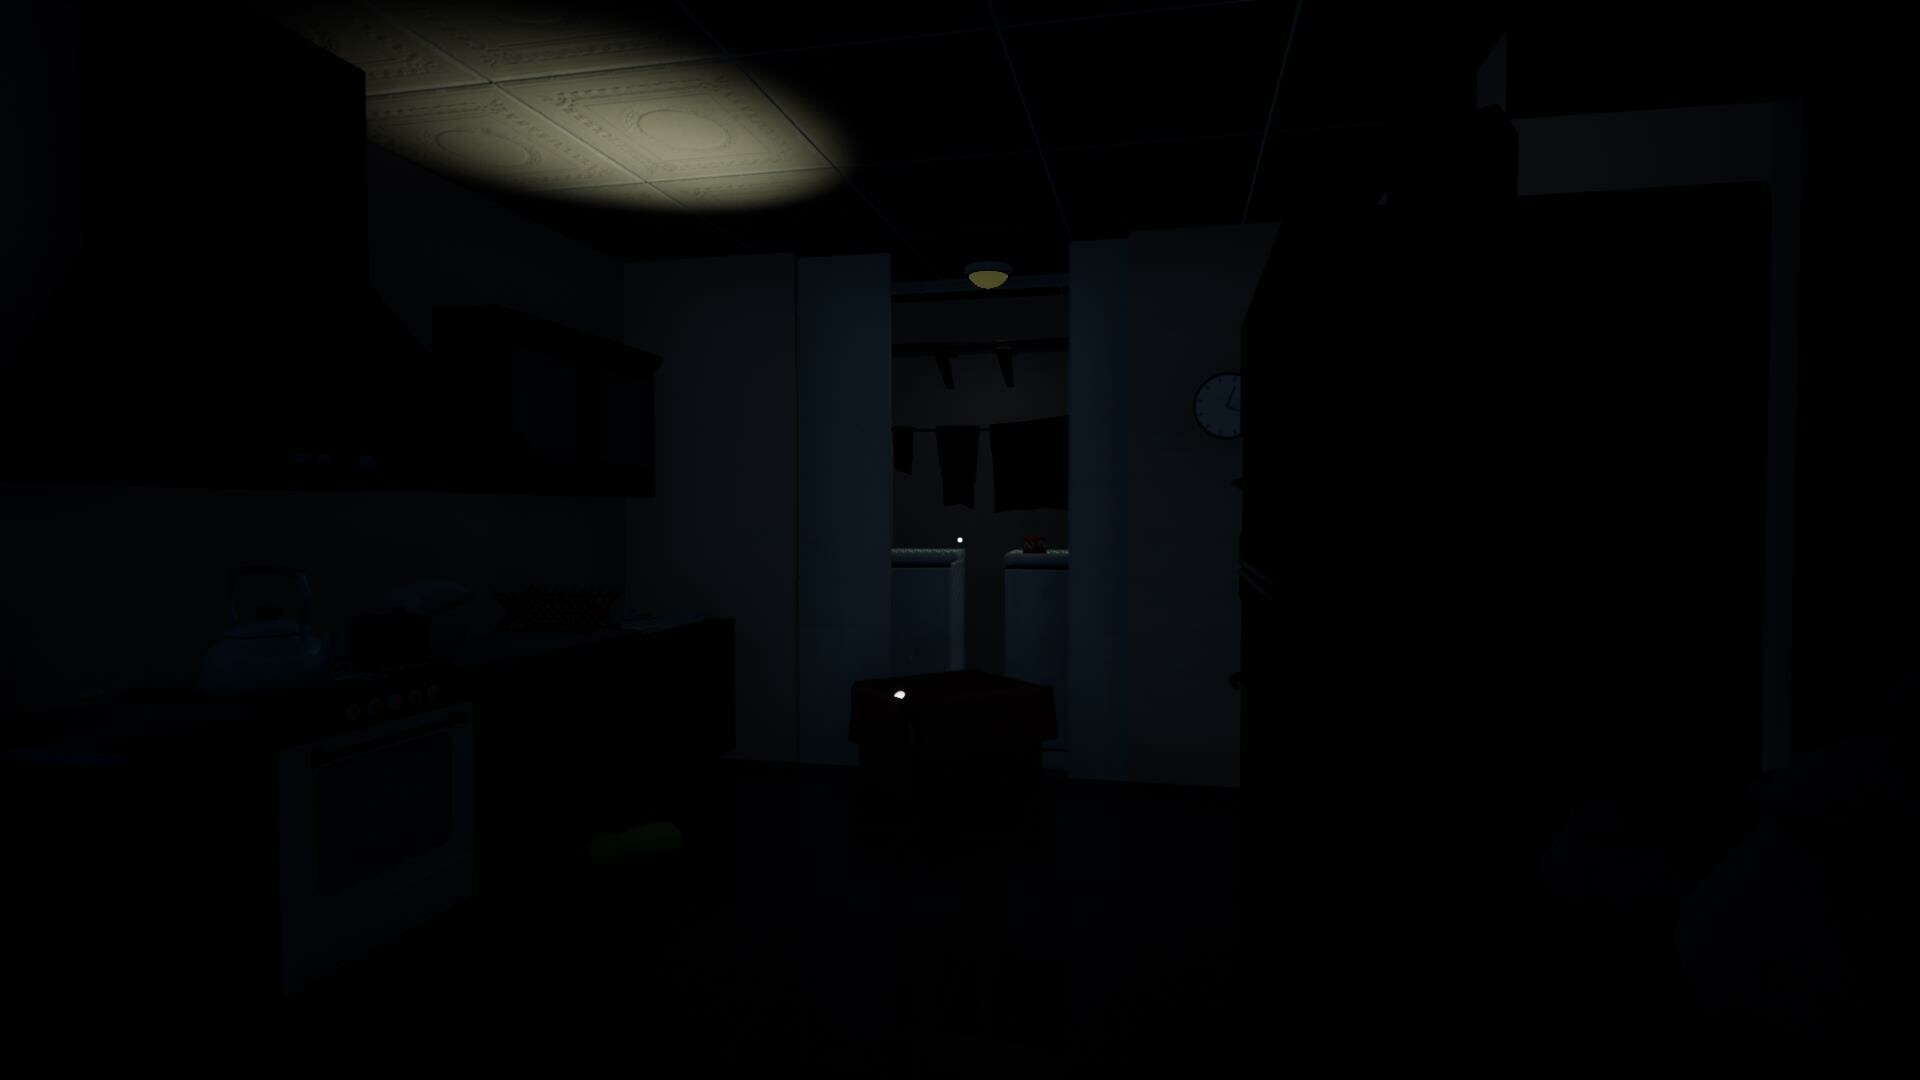 Kitchen area: when player first enters house: Back door slams shut and  the laundry room light flashes to beckon the player to flashlight pickup. As the  Bear blocks door turned off by switch